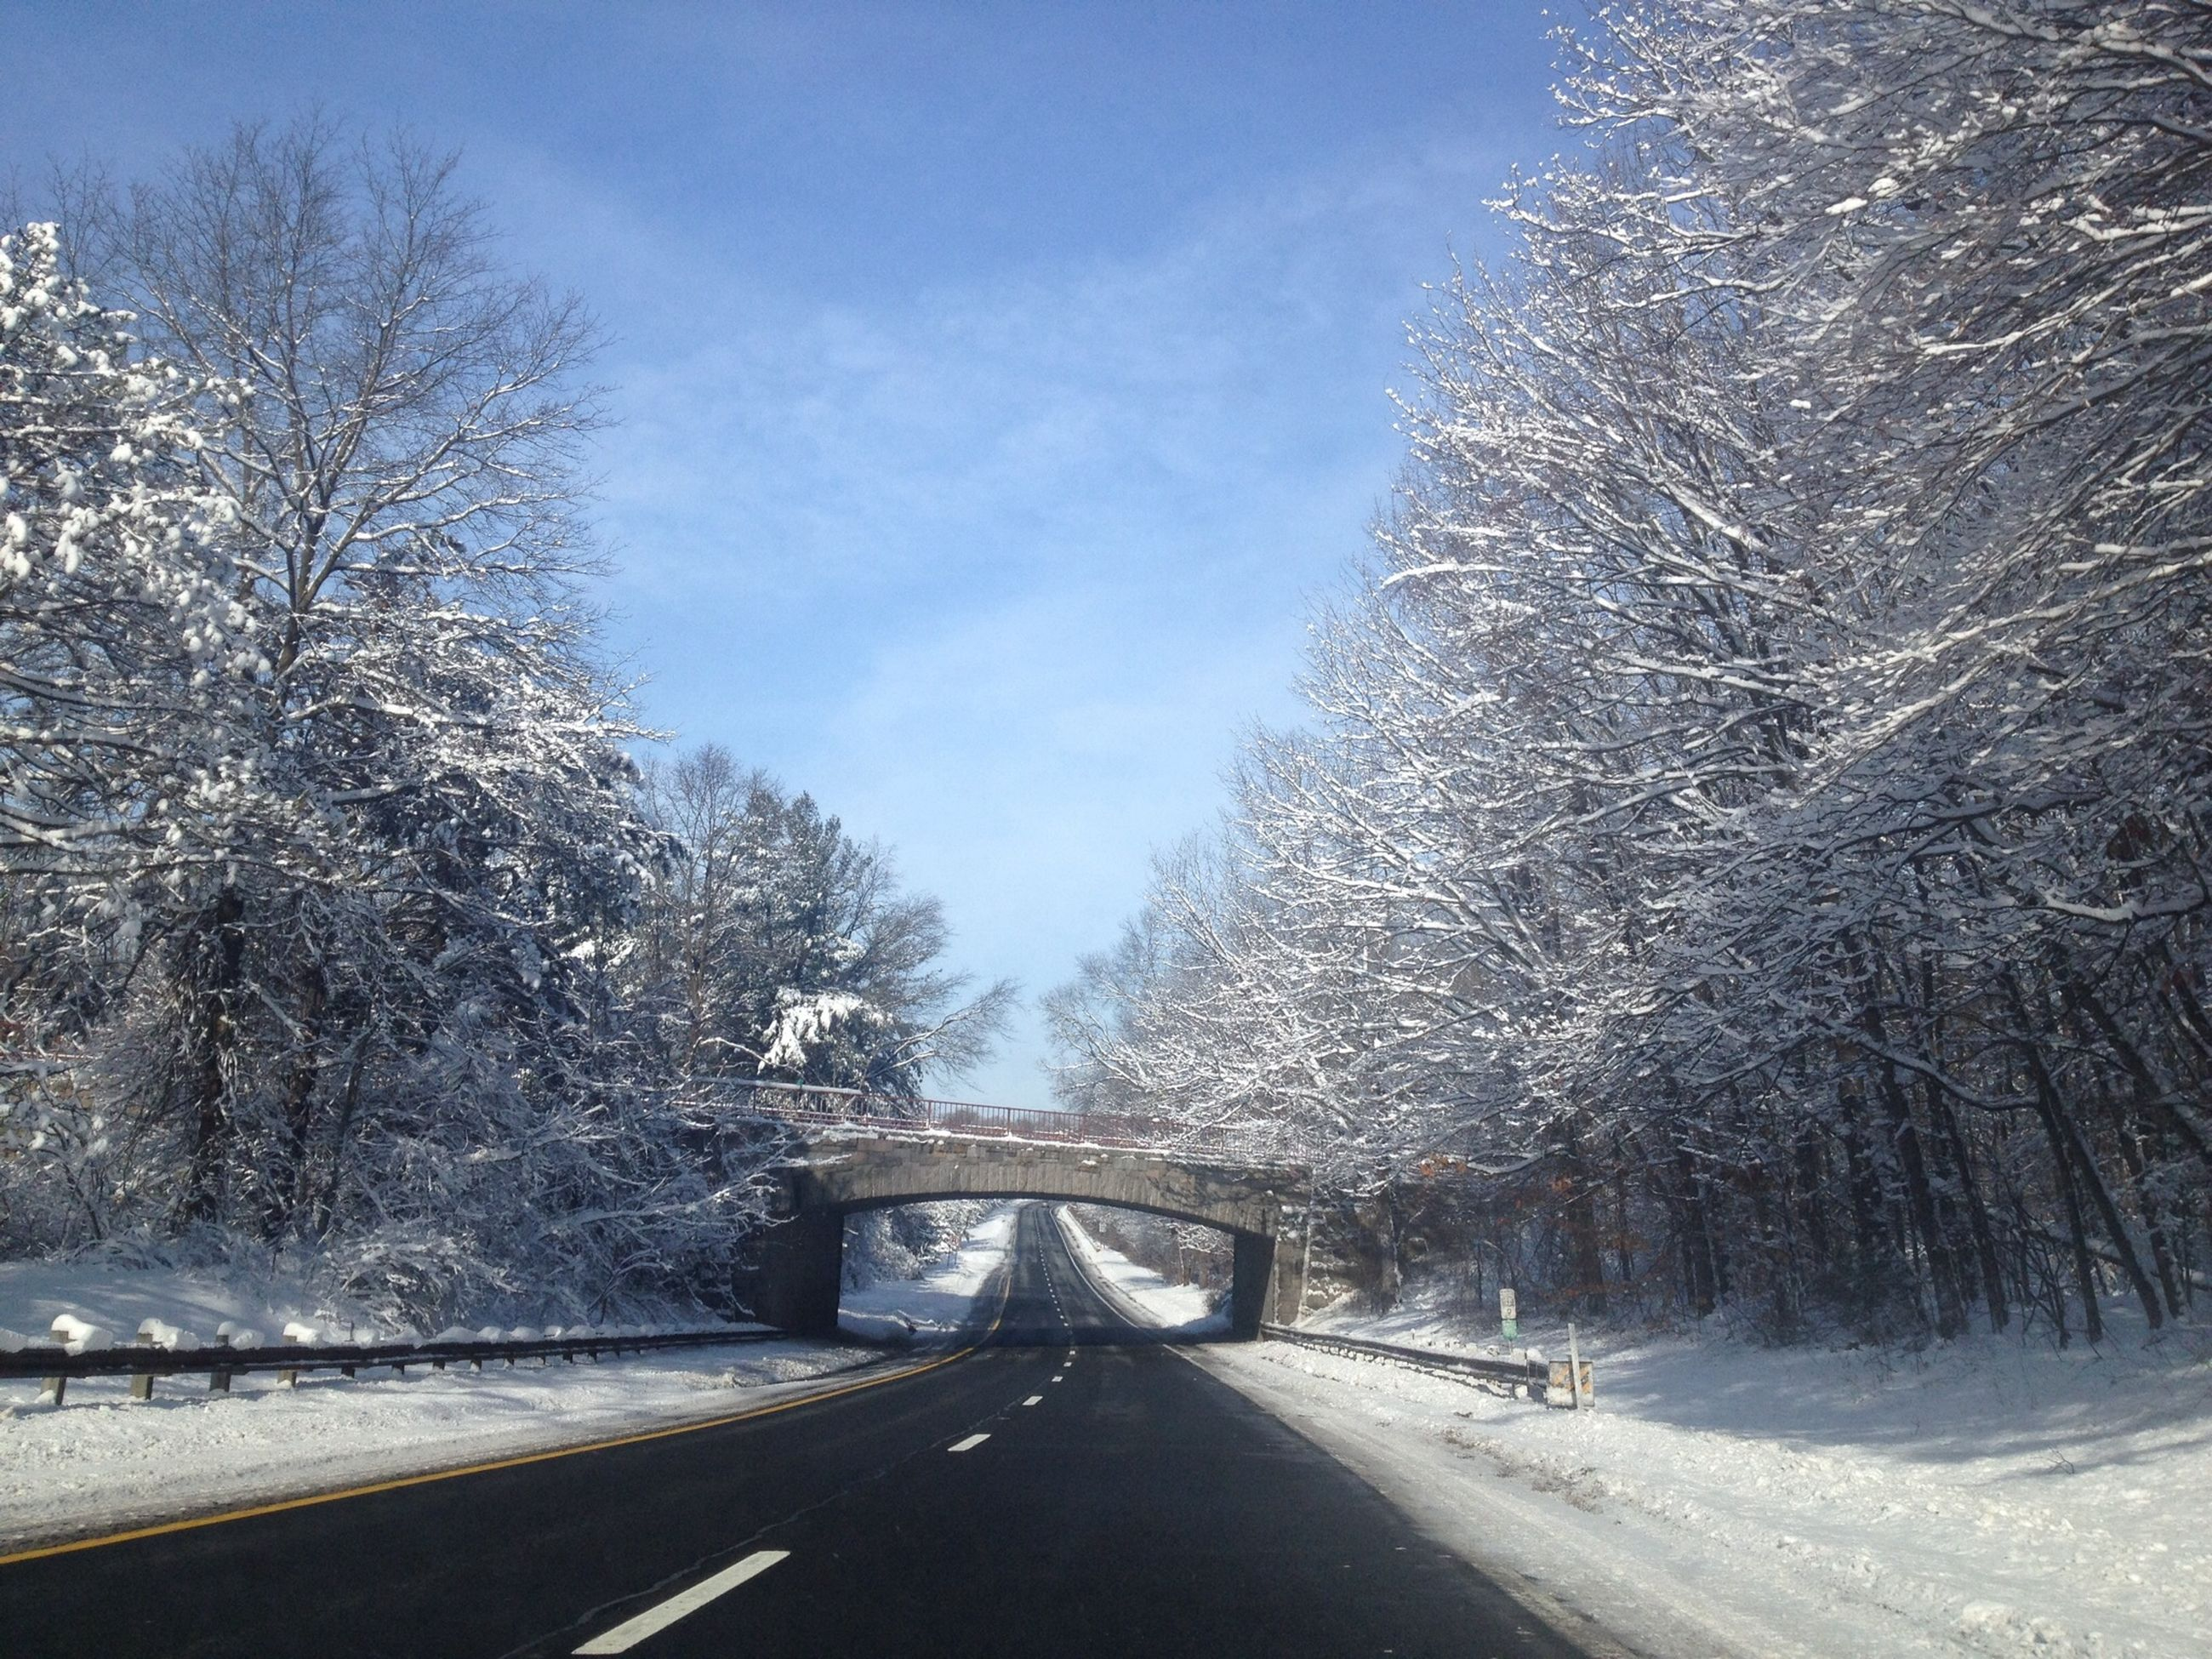 snow, winter, cold temperature, the way forward, transportation, season, road, tree, weather, diminishing perspective, vanishing point, covering, sky, frozen, nature, street, empty road, road marking, bare tree, covered